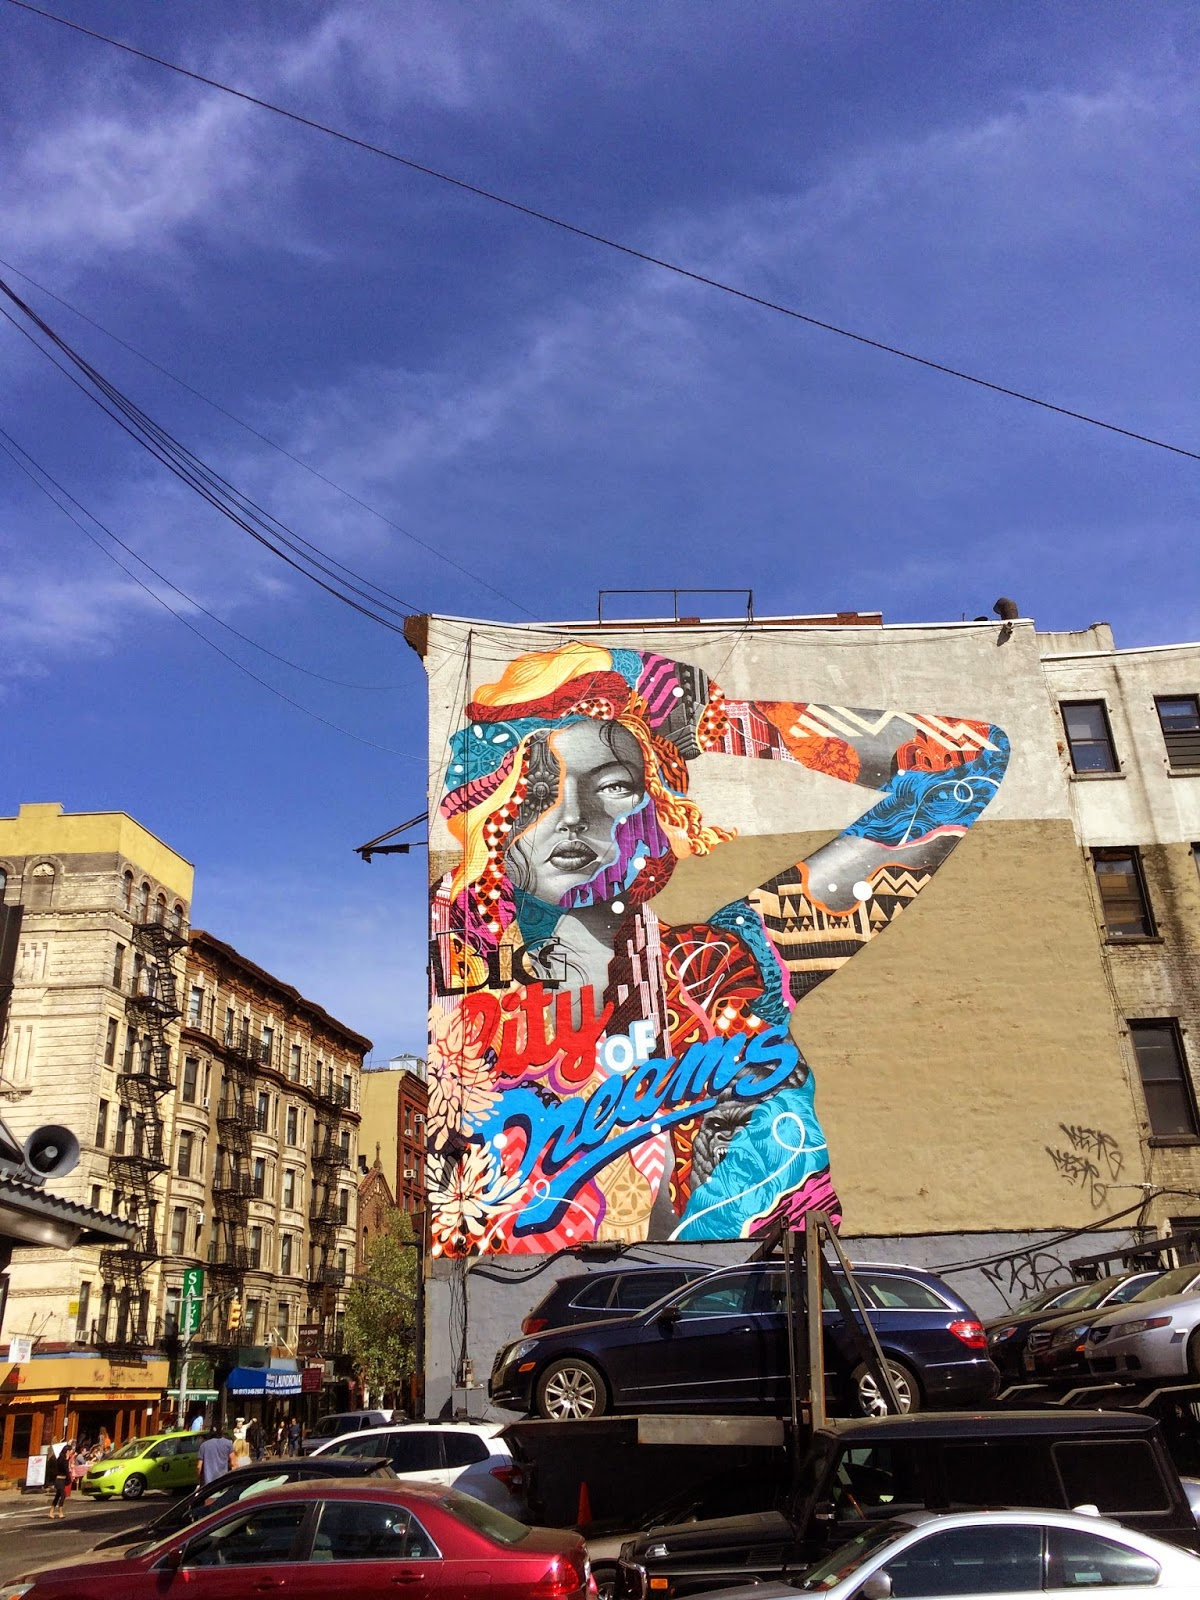 Tristan Eaton unveils Big City Dreams his newest mural in New York City - the vandallist (3)